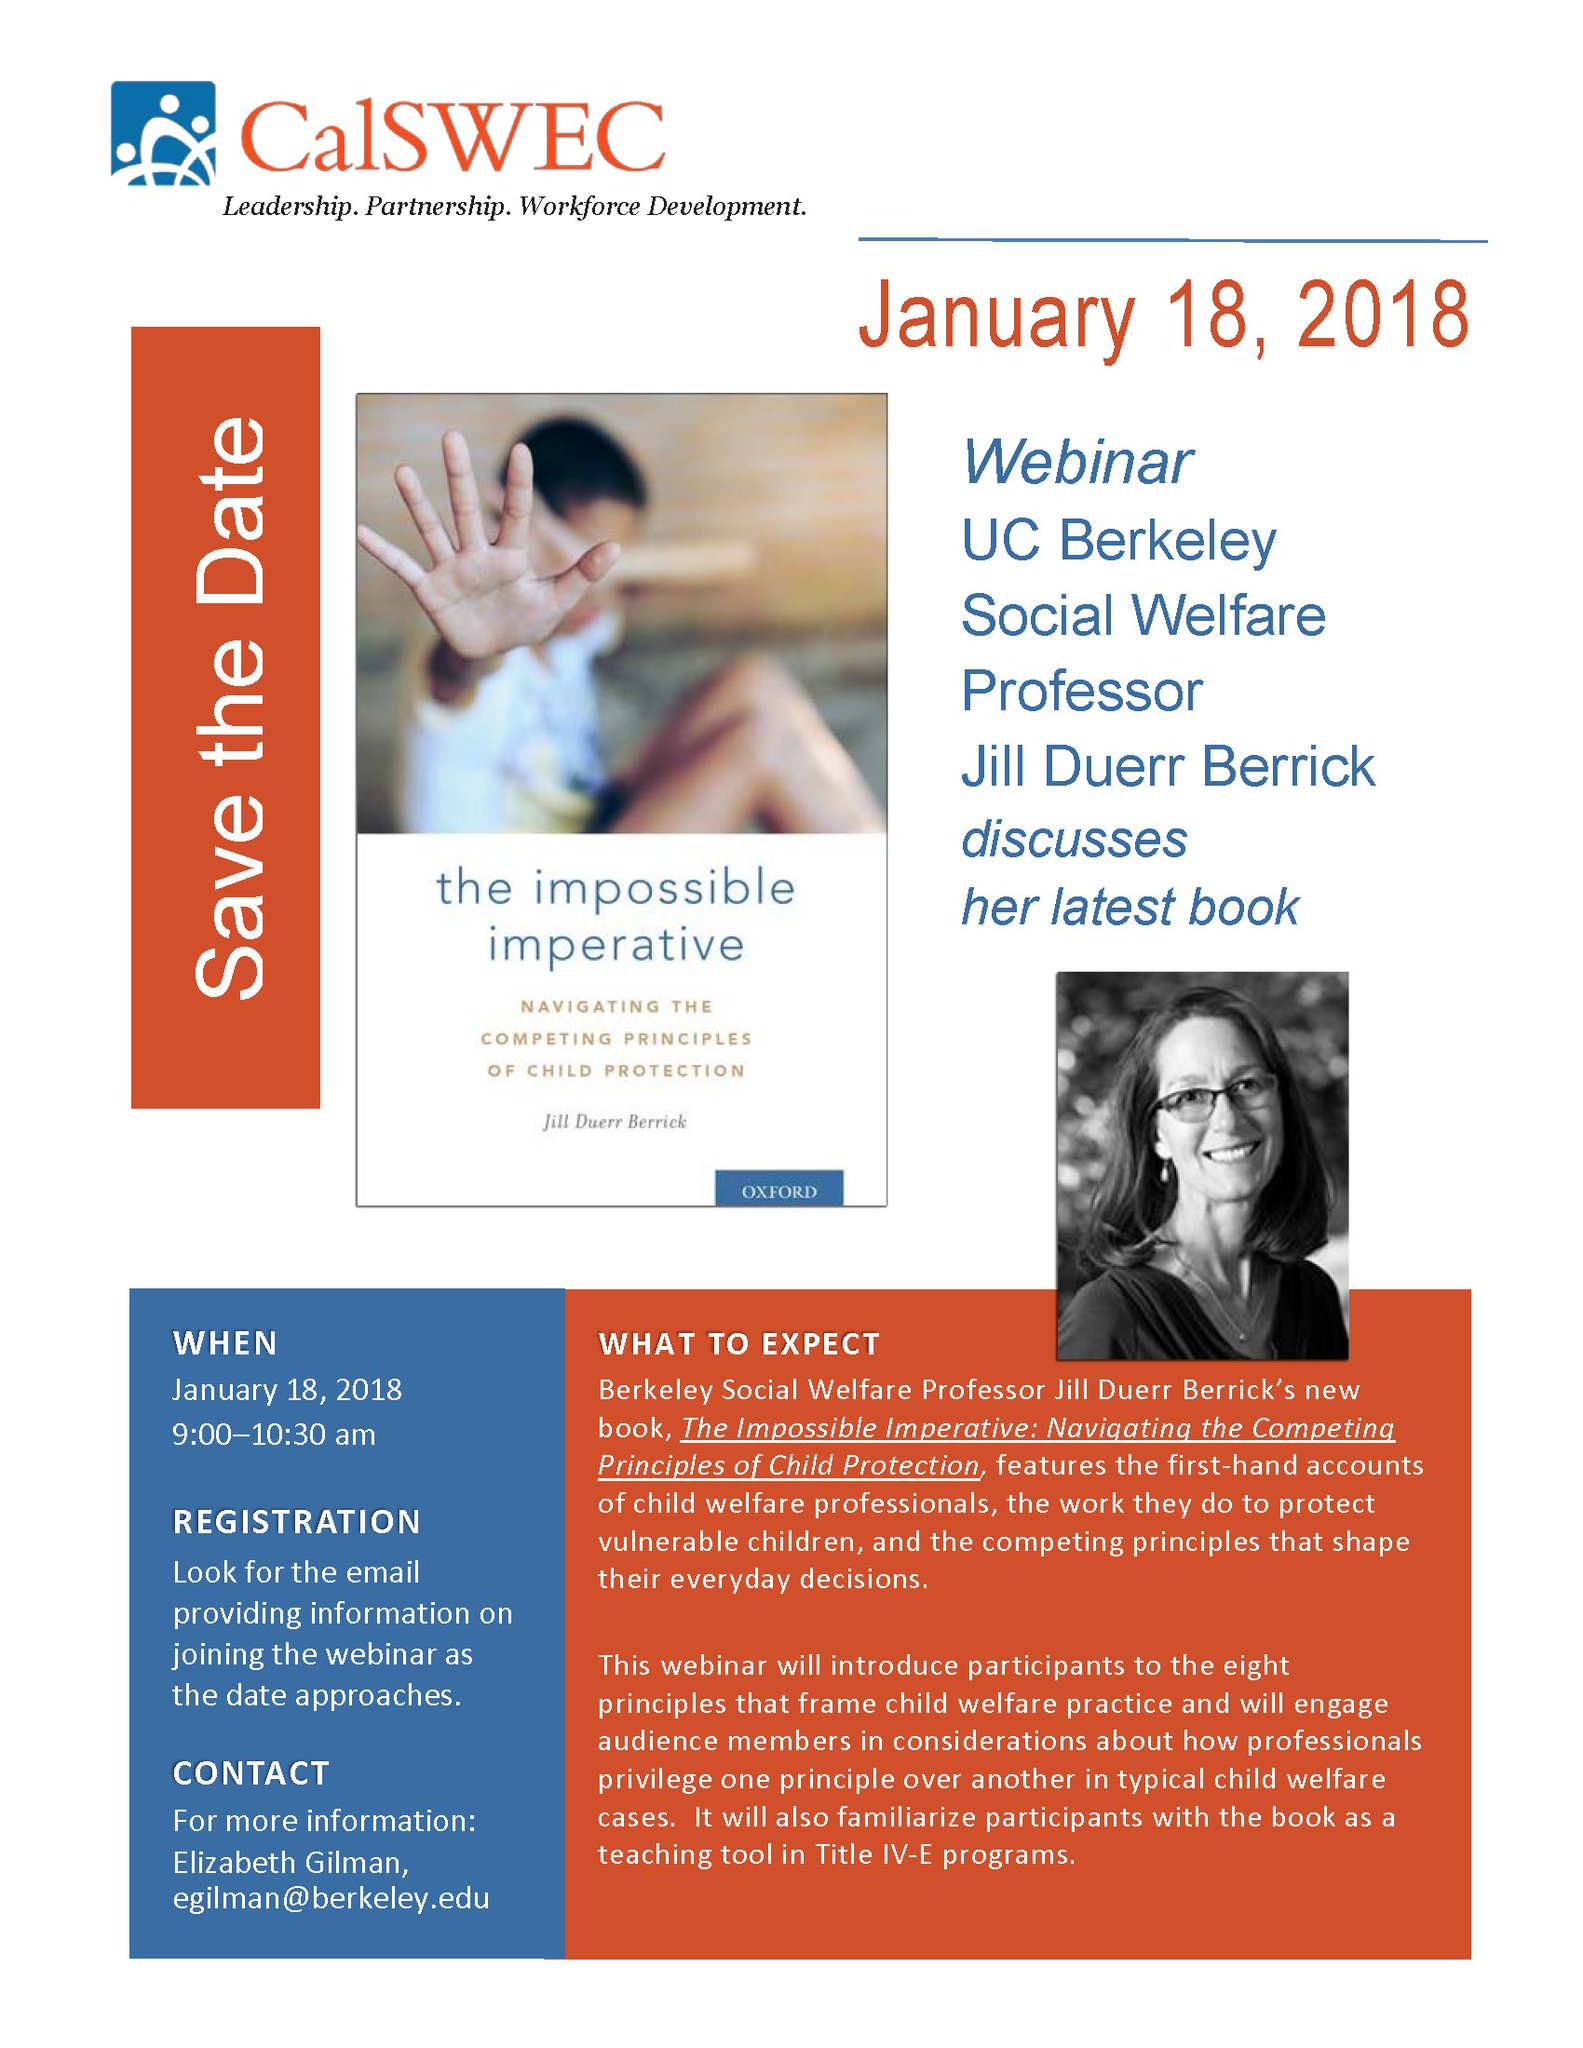 """... professor Jill Duerr Berrick will discuss her latest book, """"The  Impossible Imperative: Navigating the Competing Principles of Child  Protection."""